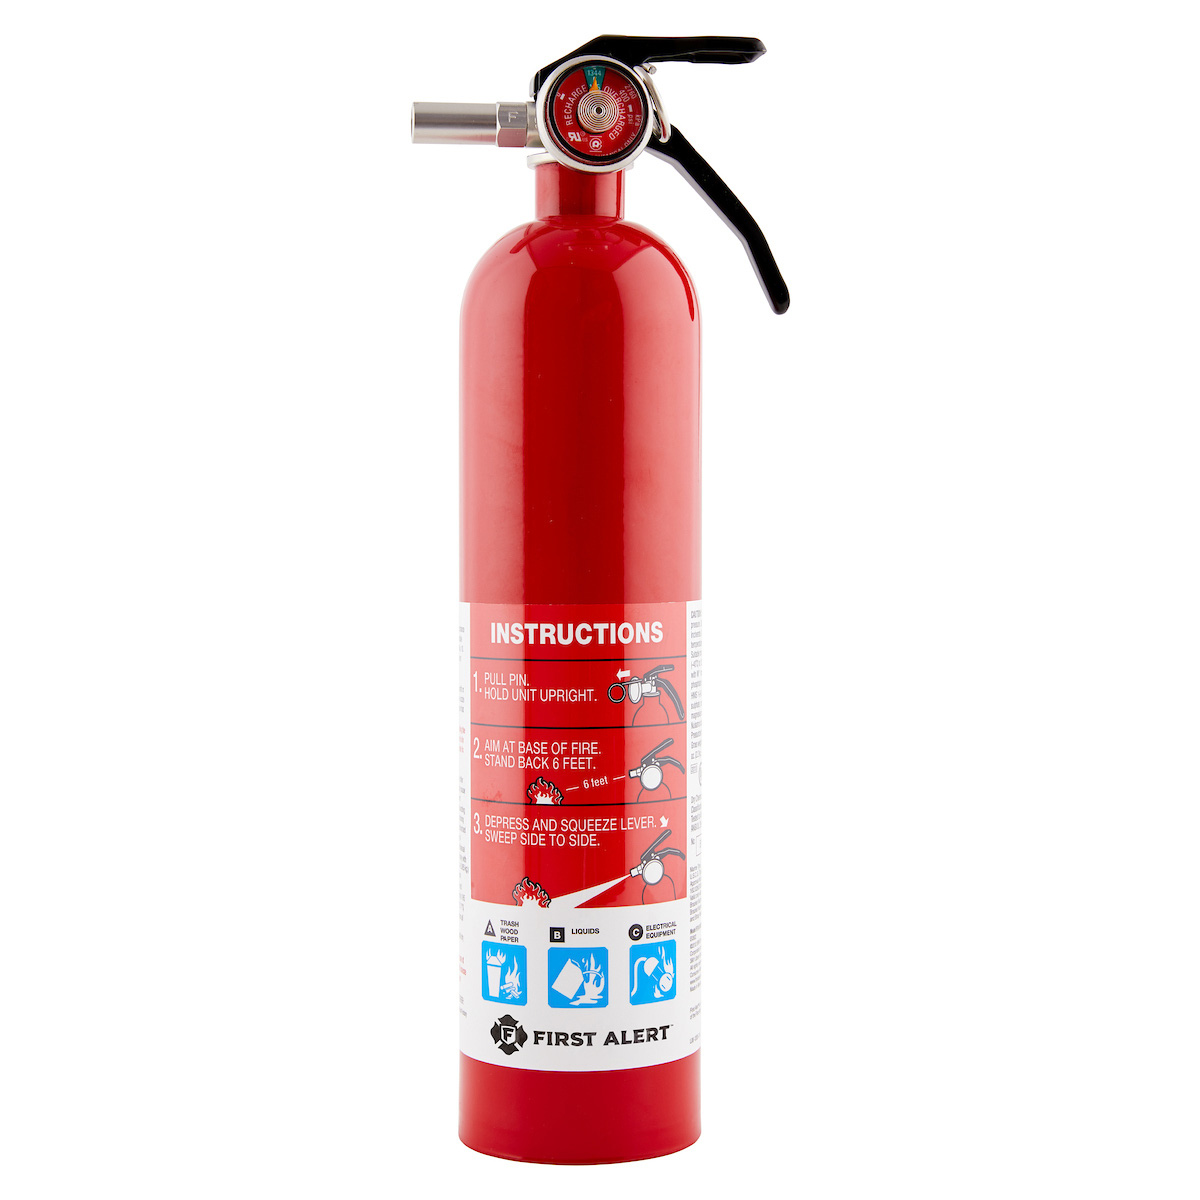 First Alert Rechargeable Garage Fire Extinguisher UL Rated 10-B:C (Red)